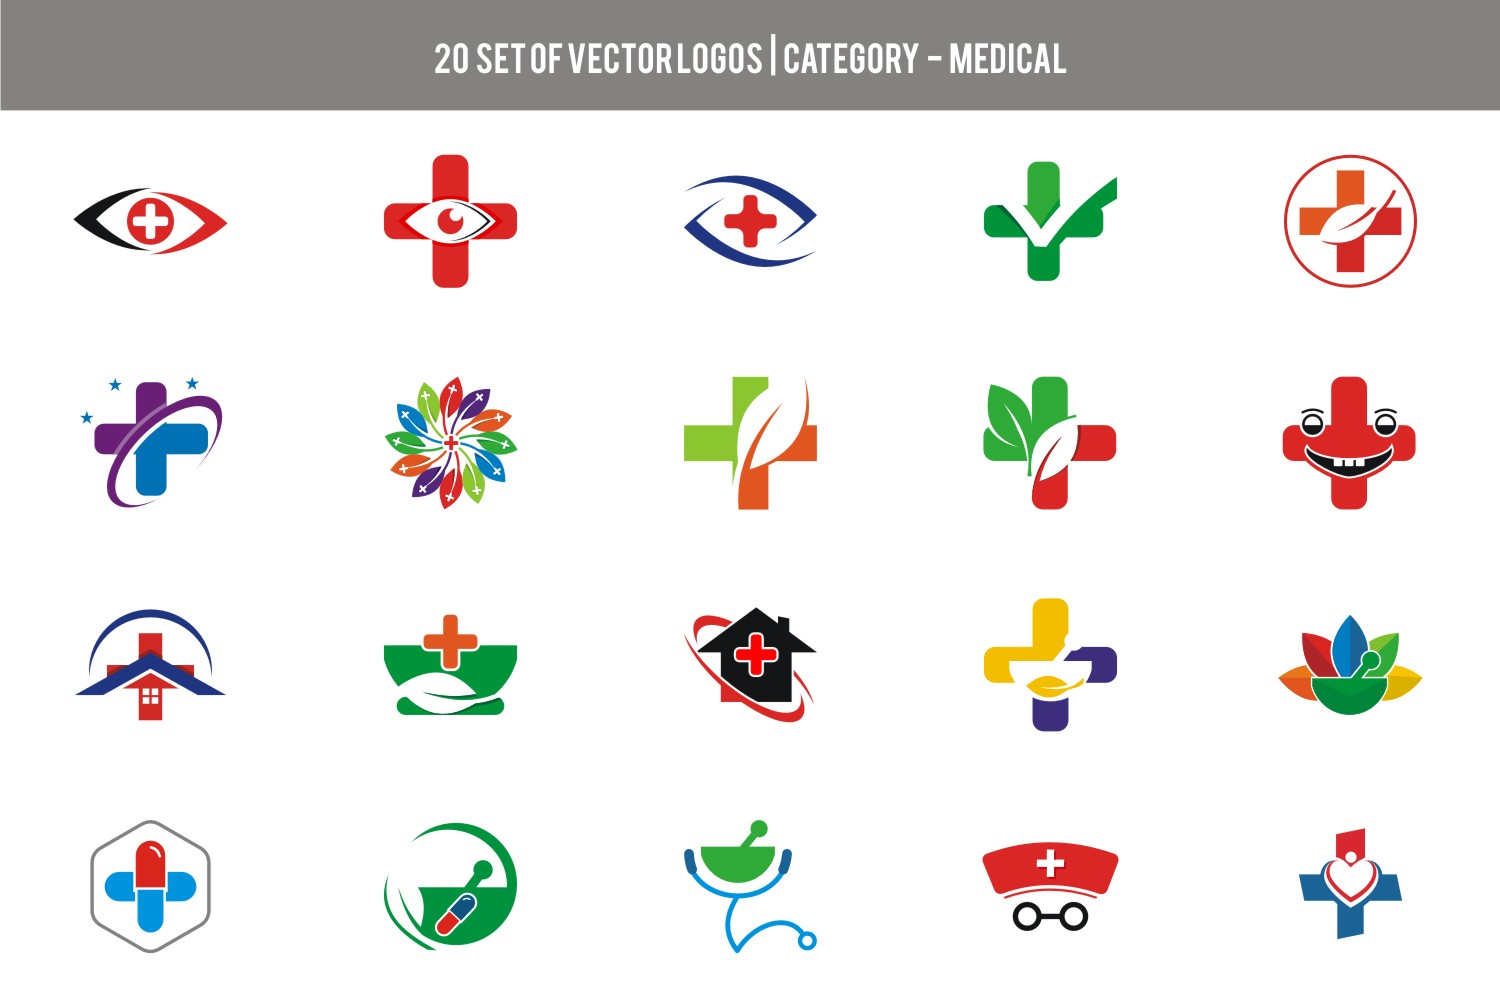 20 Set Stock Vector - Category Medical example image 1